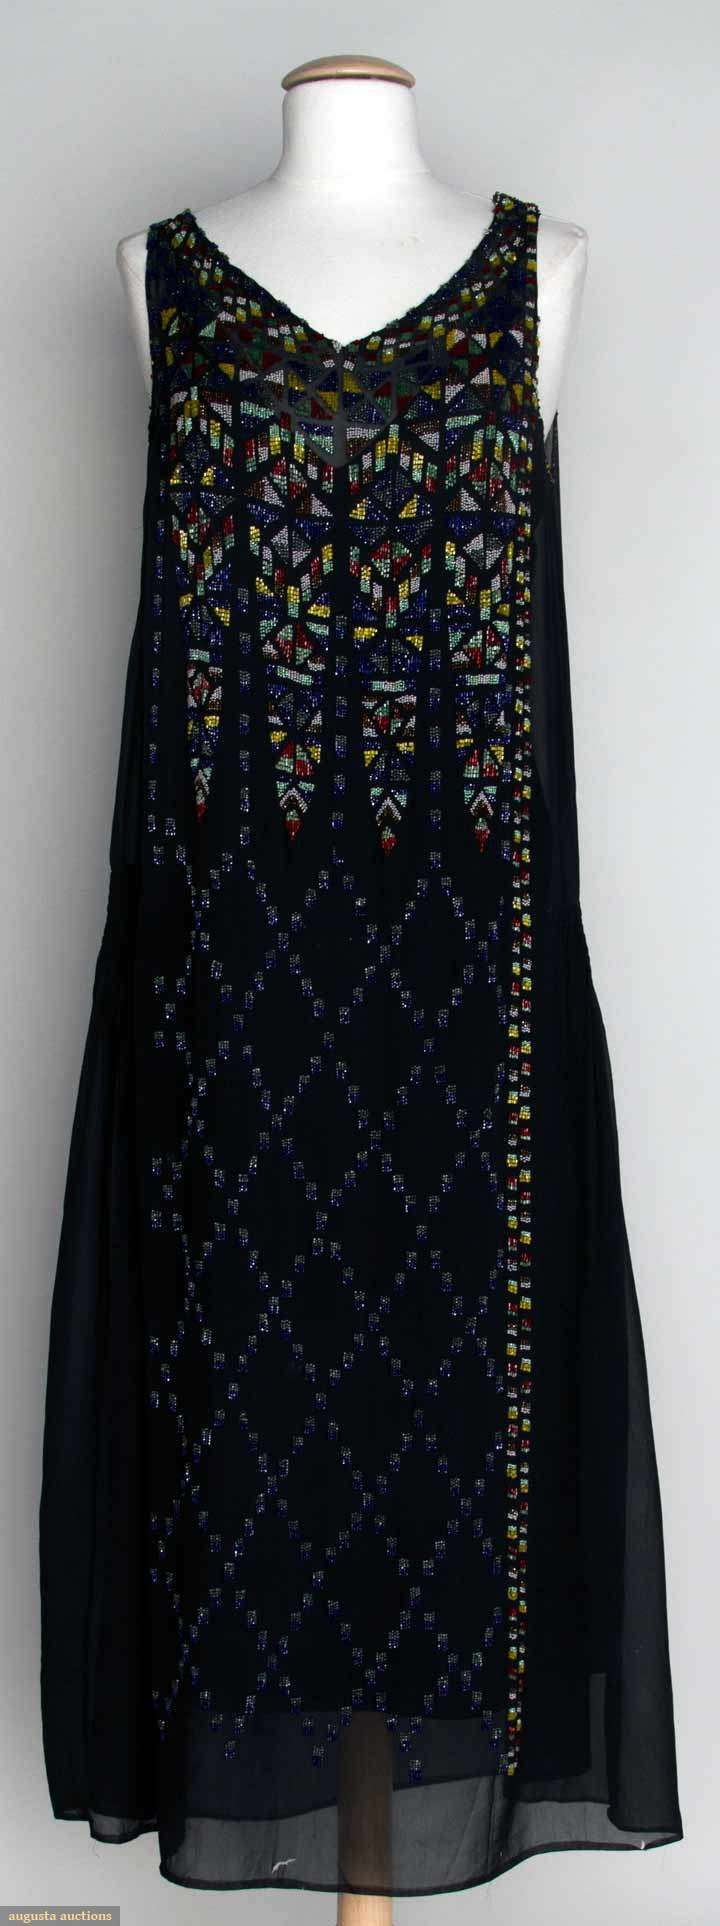 1920s black chiffon dress w/geometric beaded pattern predominantly in yellow, green, red, and blue.